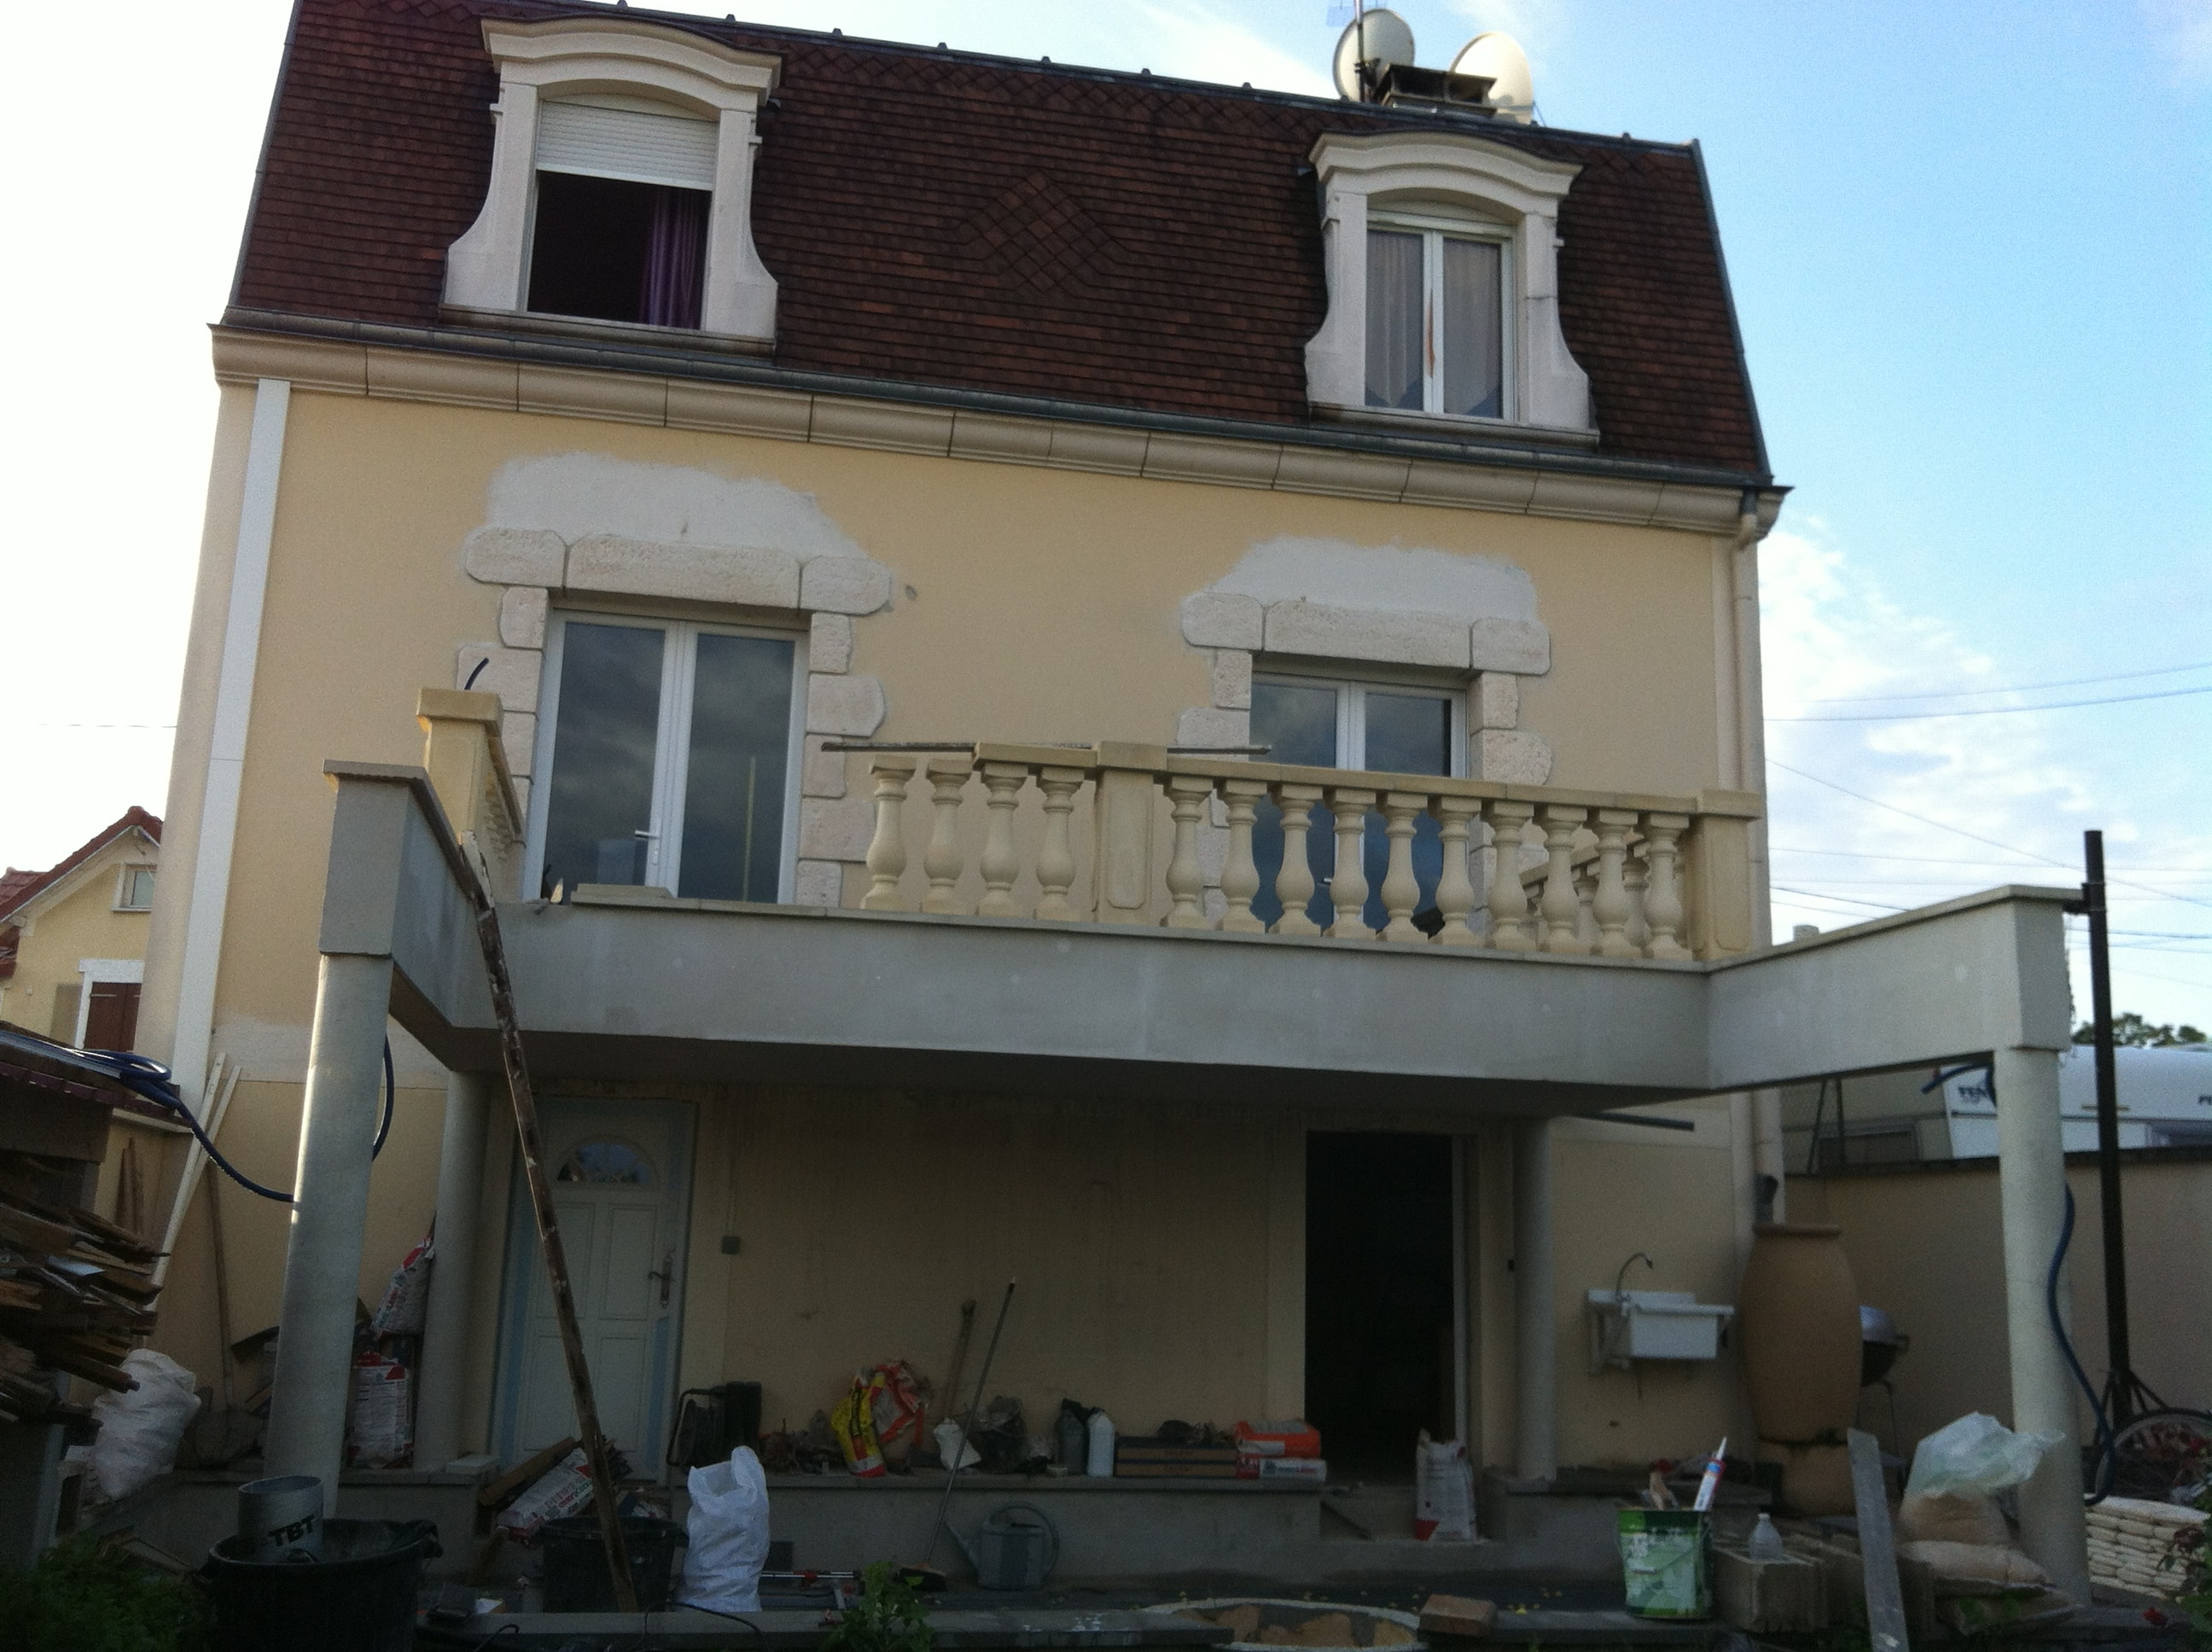 travaux-creation-terrasse-3-agrandissement-balcon-pendant-texas-batiment-min